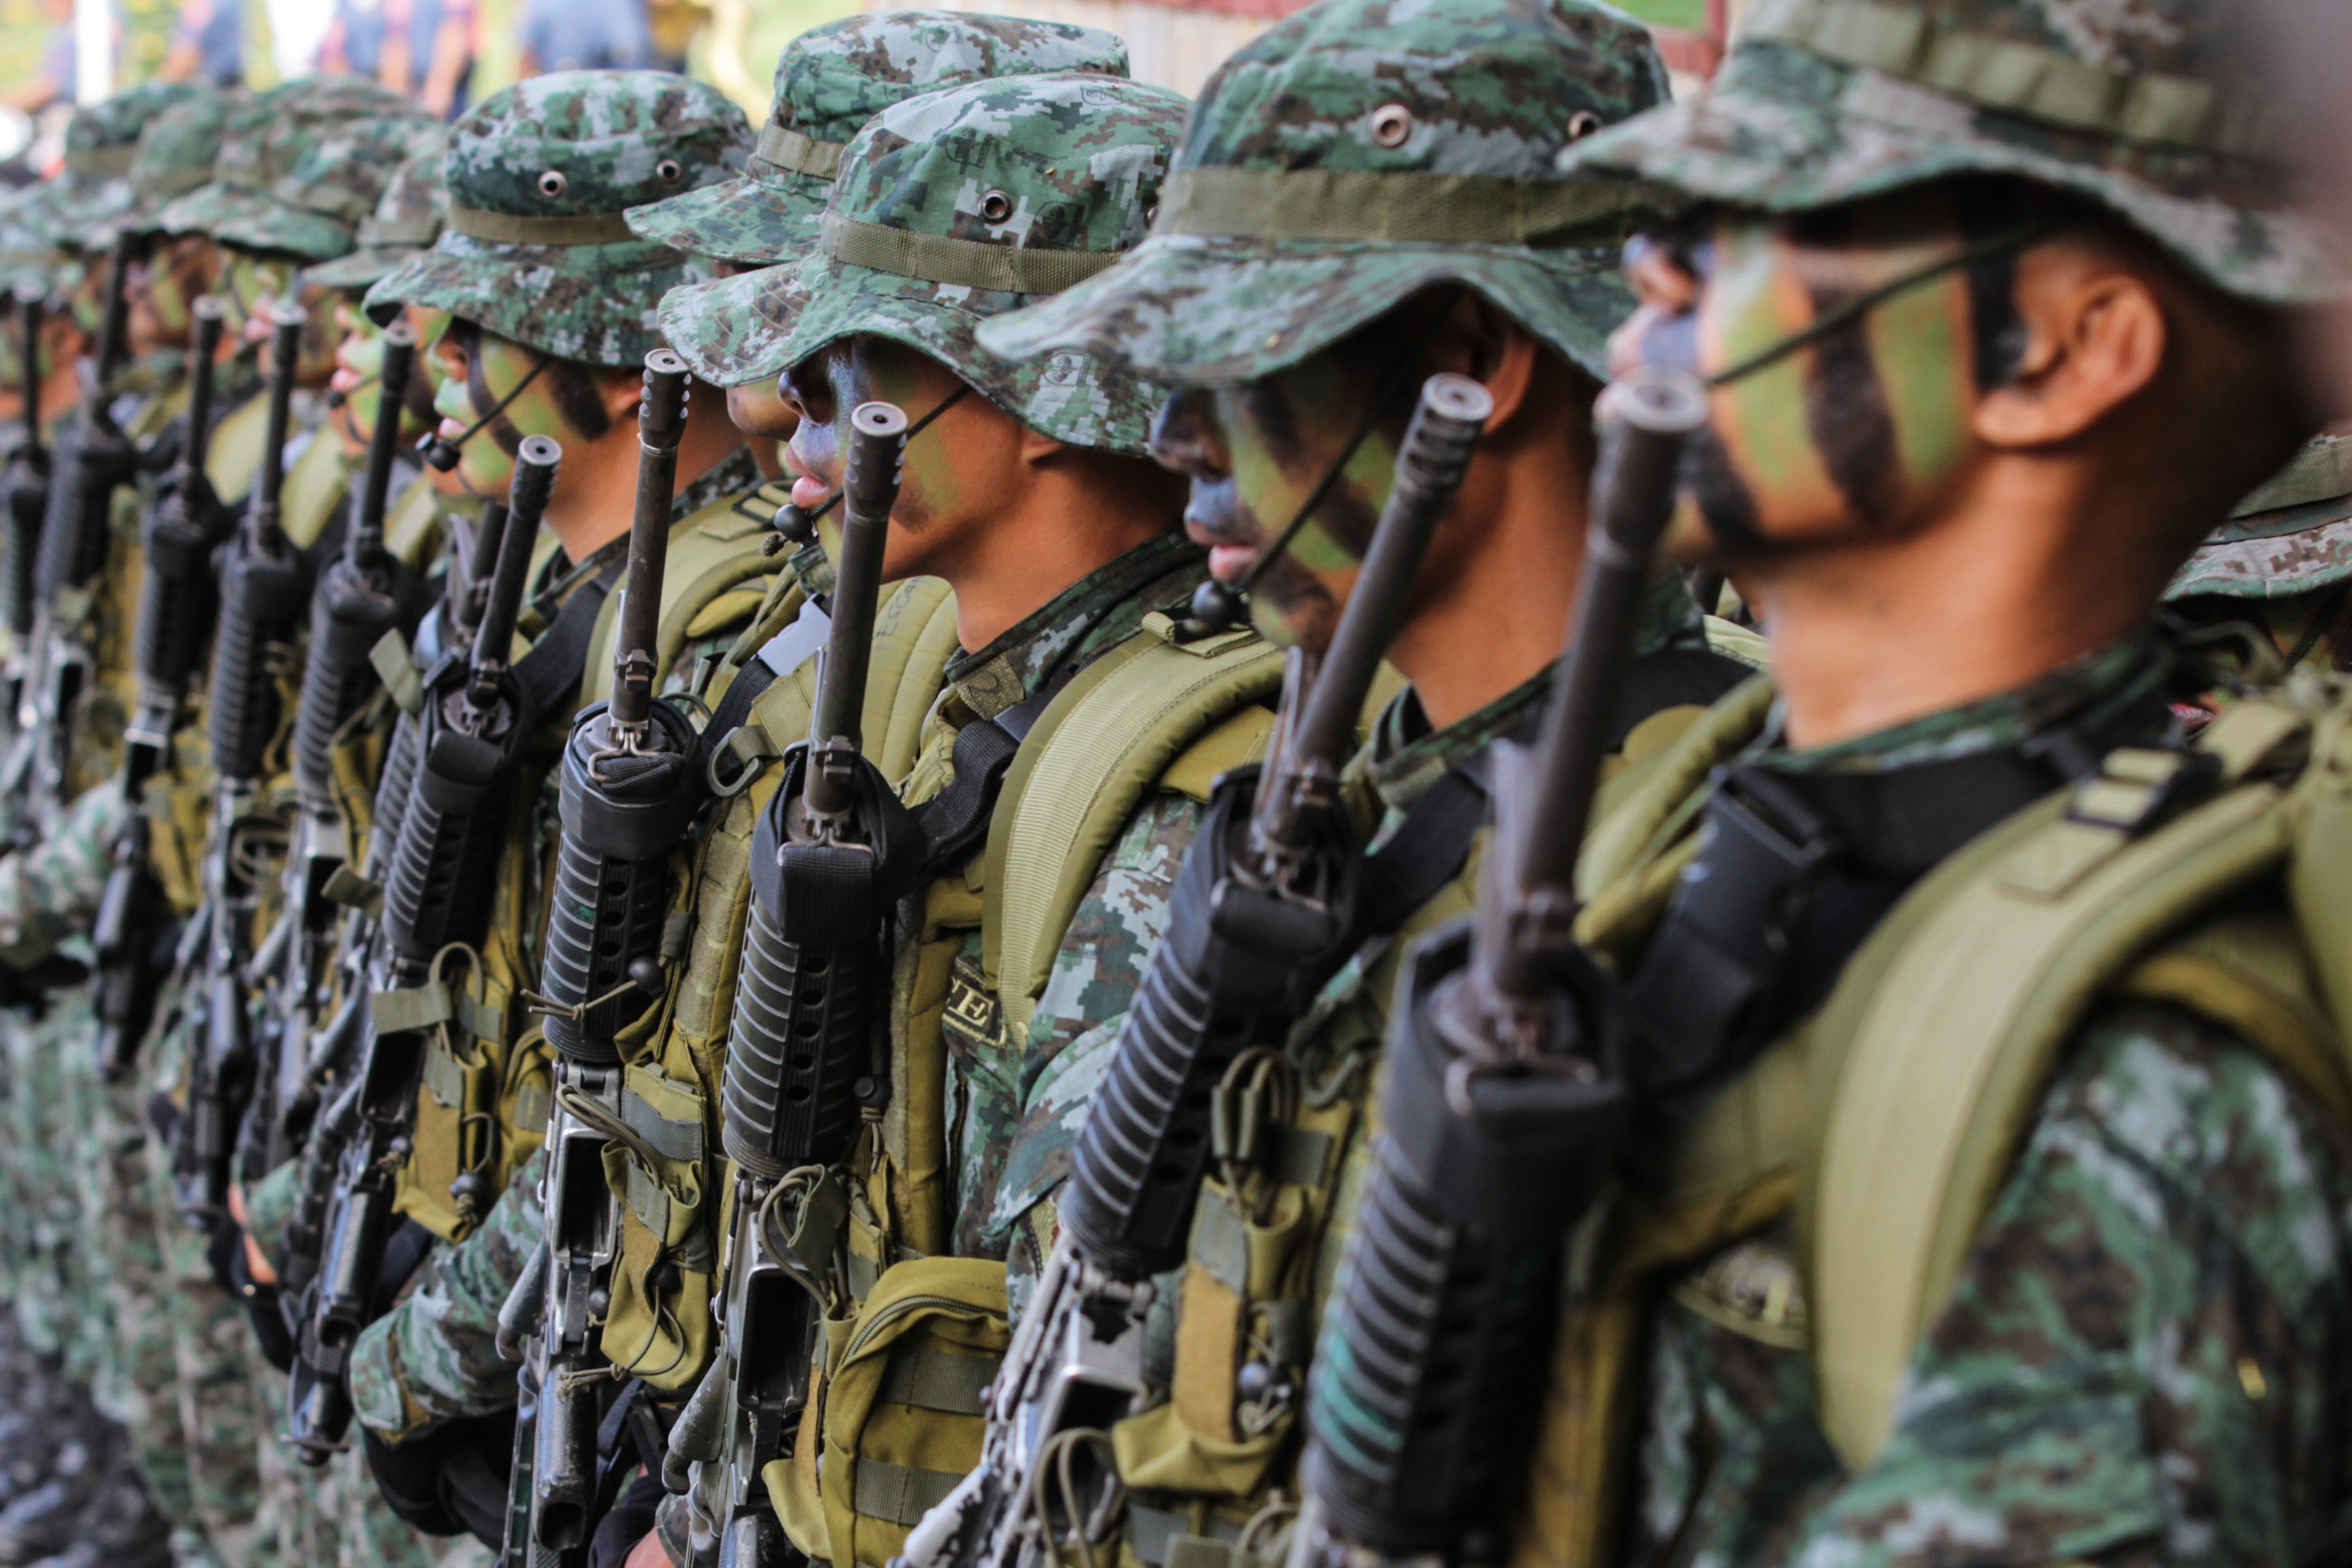 'TAGALIGTAS' BROTHERS. Special Action Forces troops stand during the day of remembrance of the SAF 44 at Special Action Force Headquarters in Bicutan, Taguig. Photo by Lito Borras/Rappler